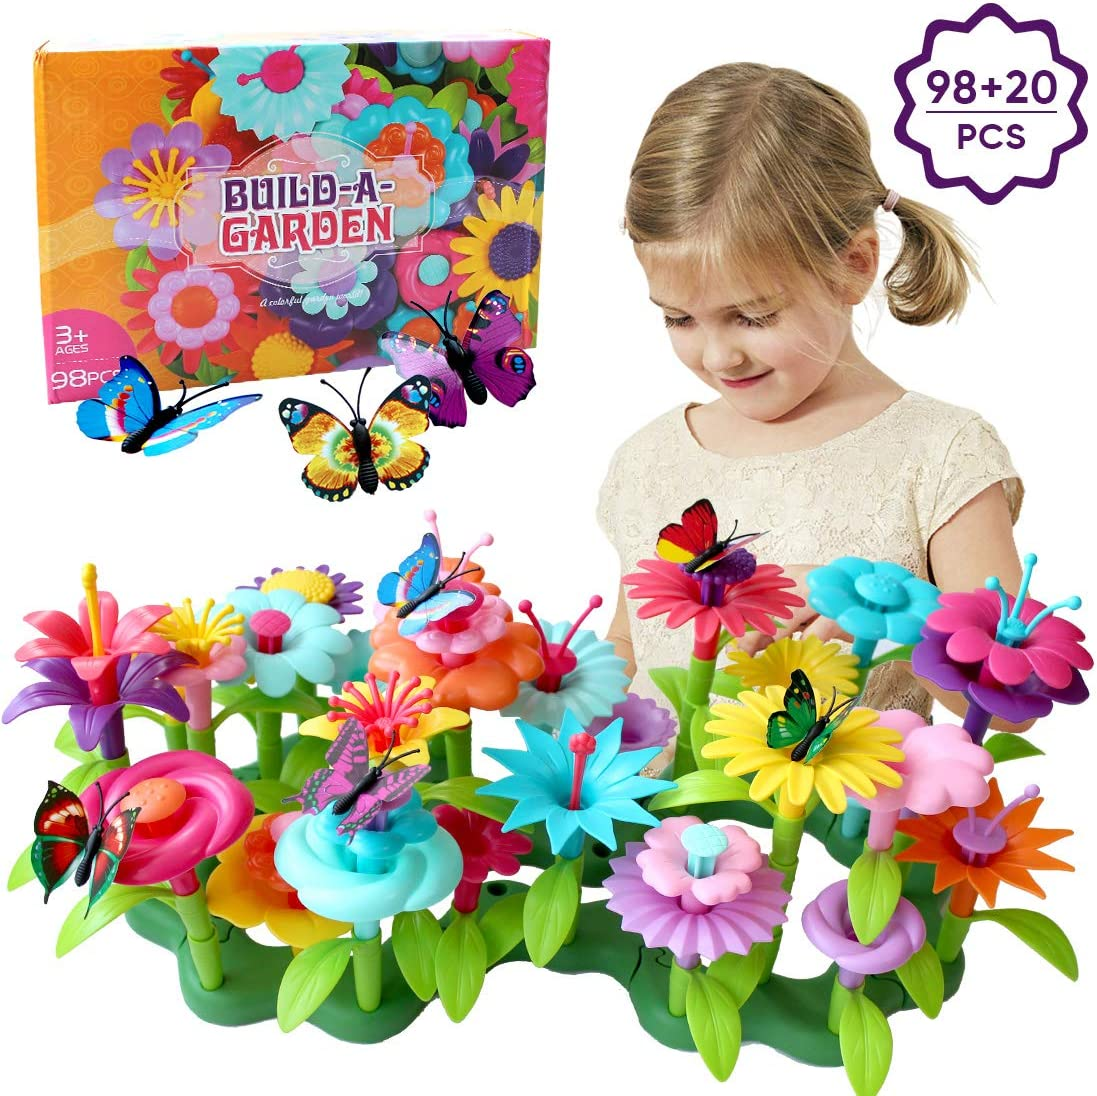 Hiwu 98 PCS Flower Garden Building Toys Build A Garden Toy for Girls Toddlers Age 3 4 5 6 7 Year Old, Including 20 PCS Simulation Butterflies